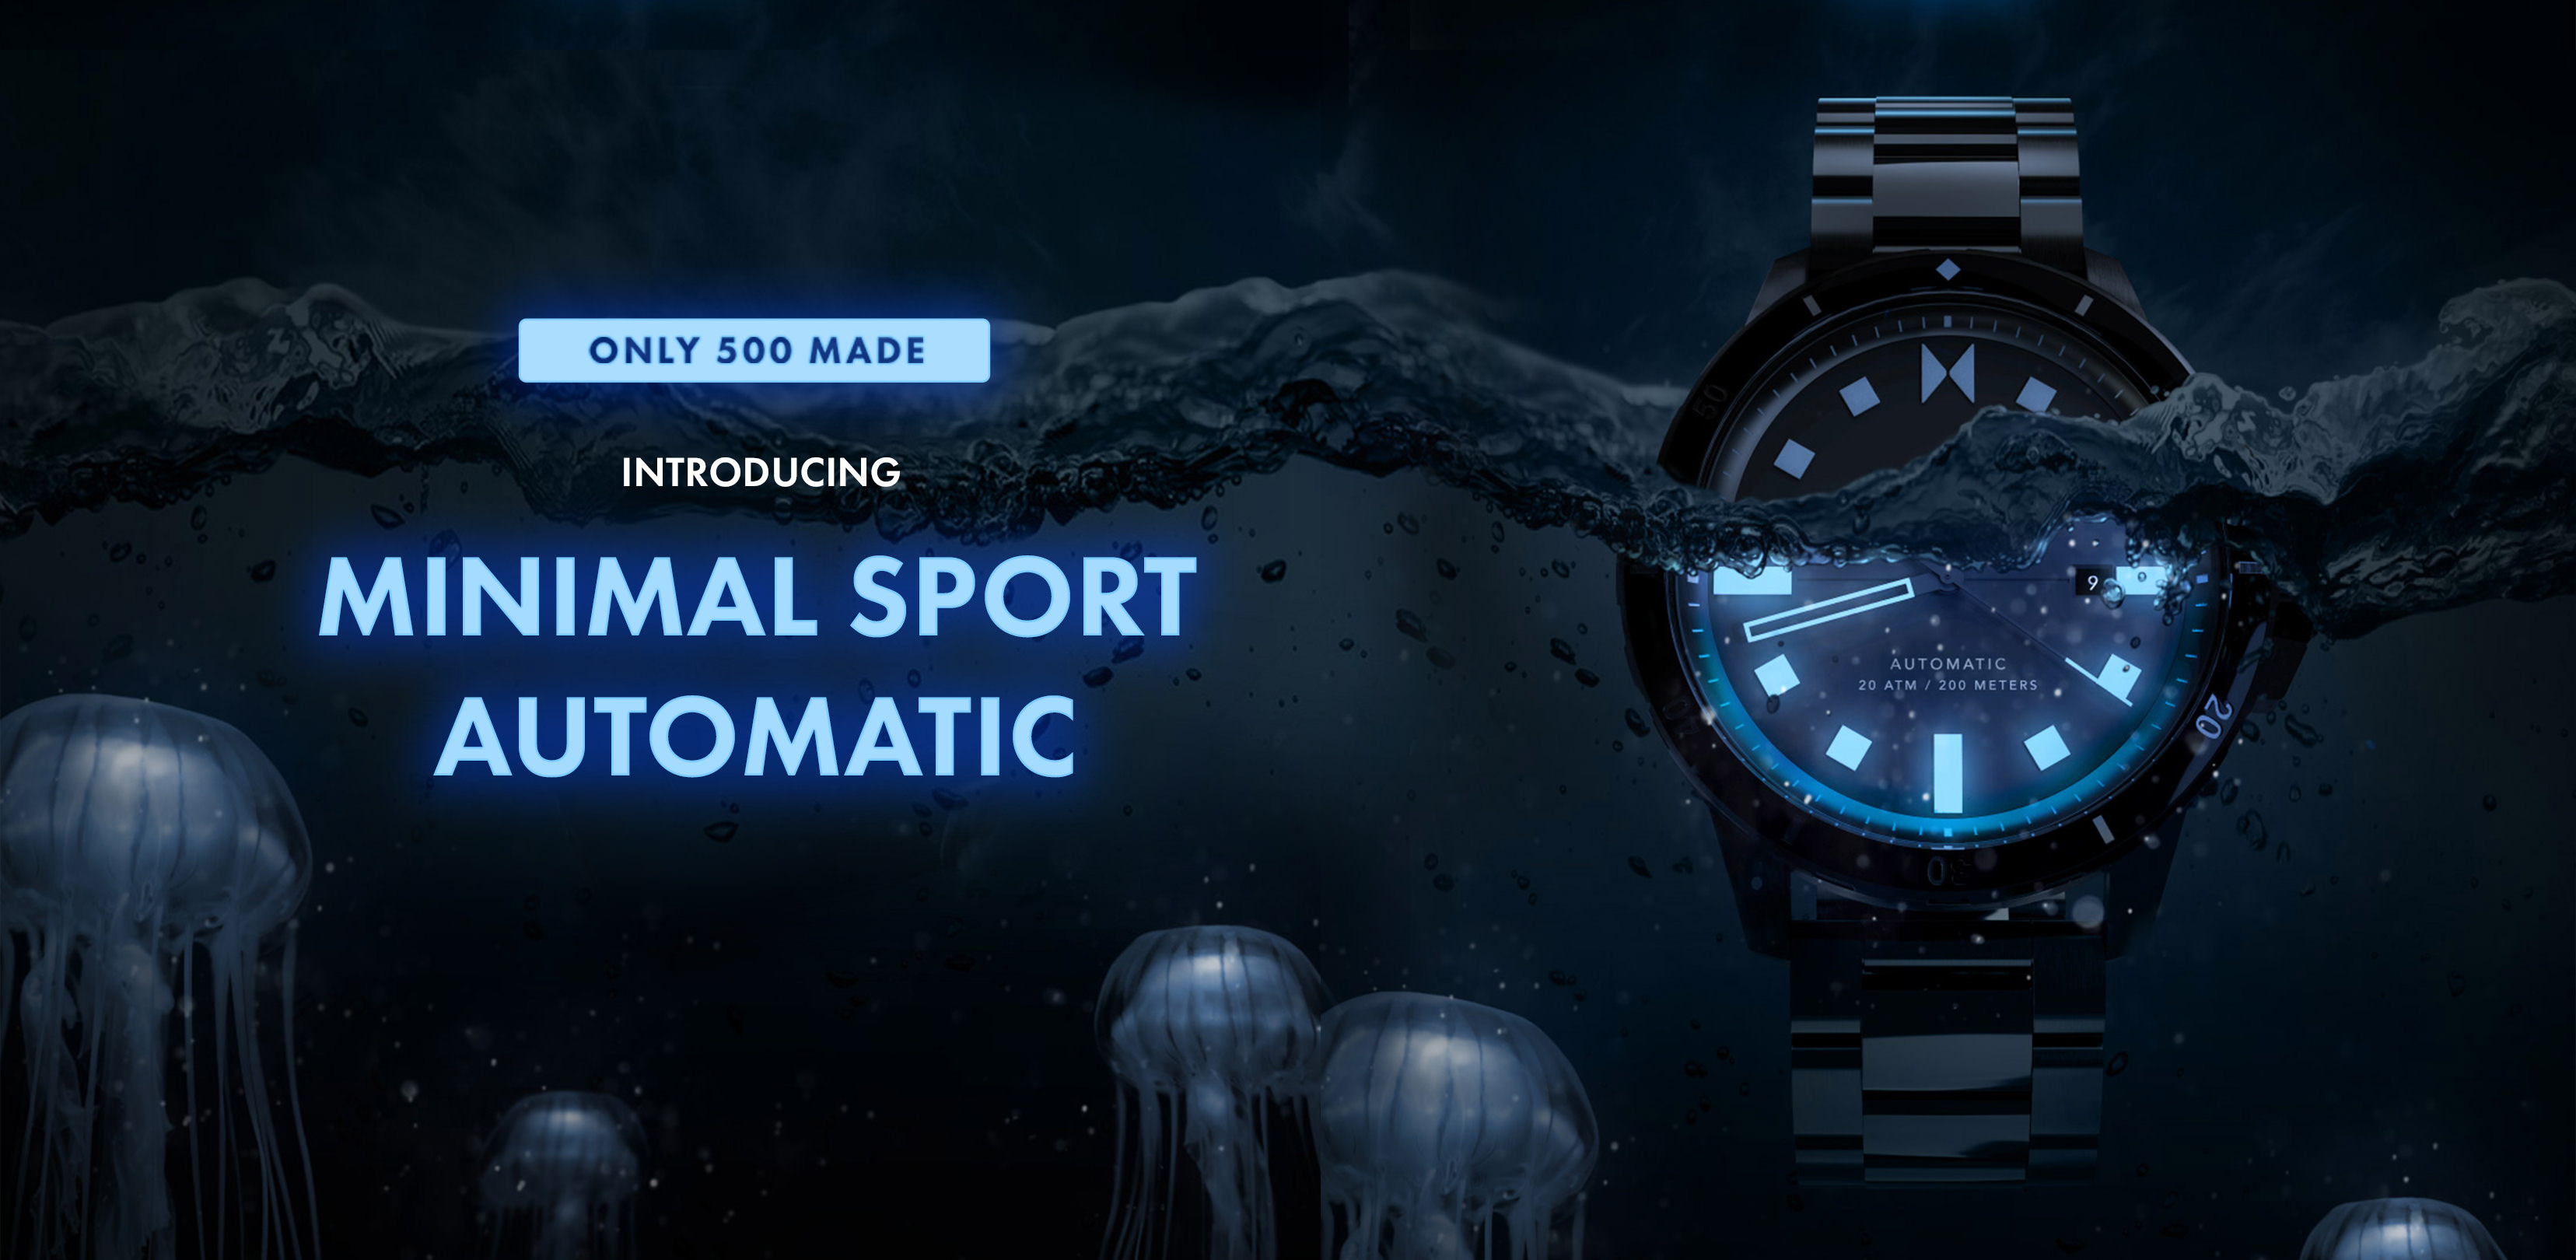 Introducing Minimal Sport Automatic, Only 500 Made